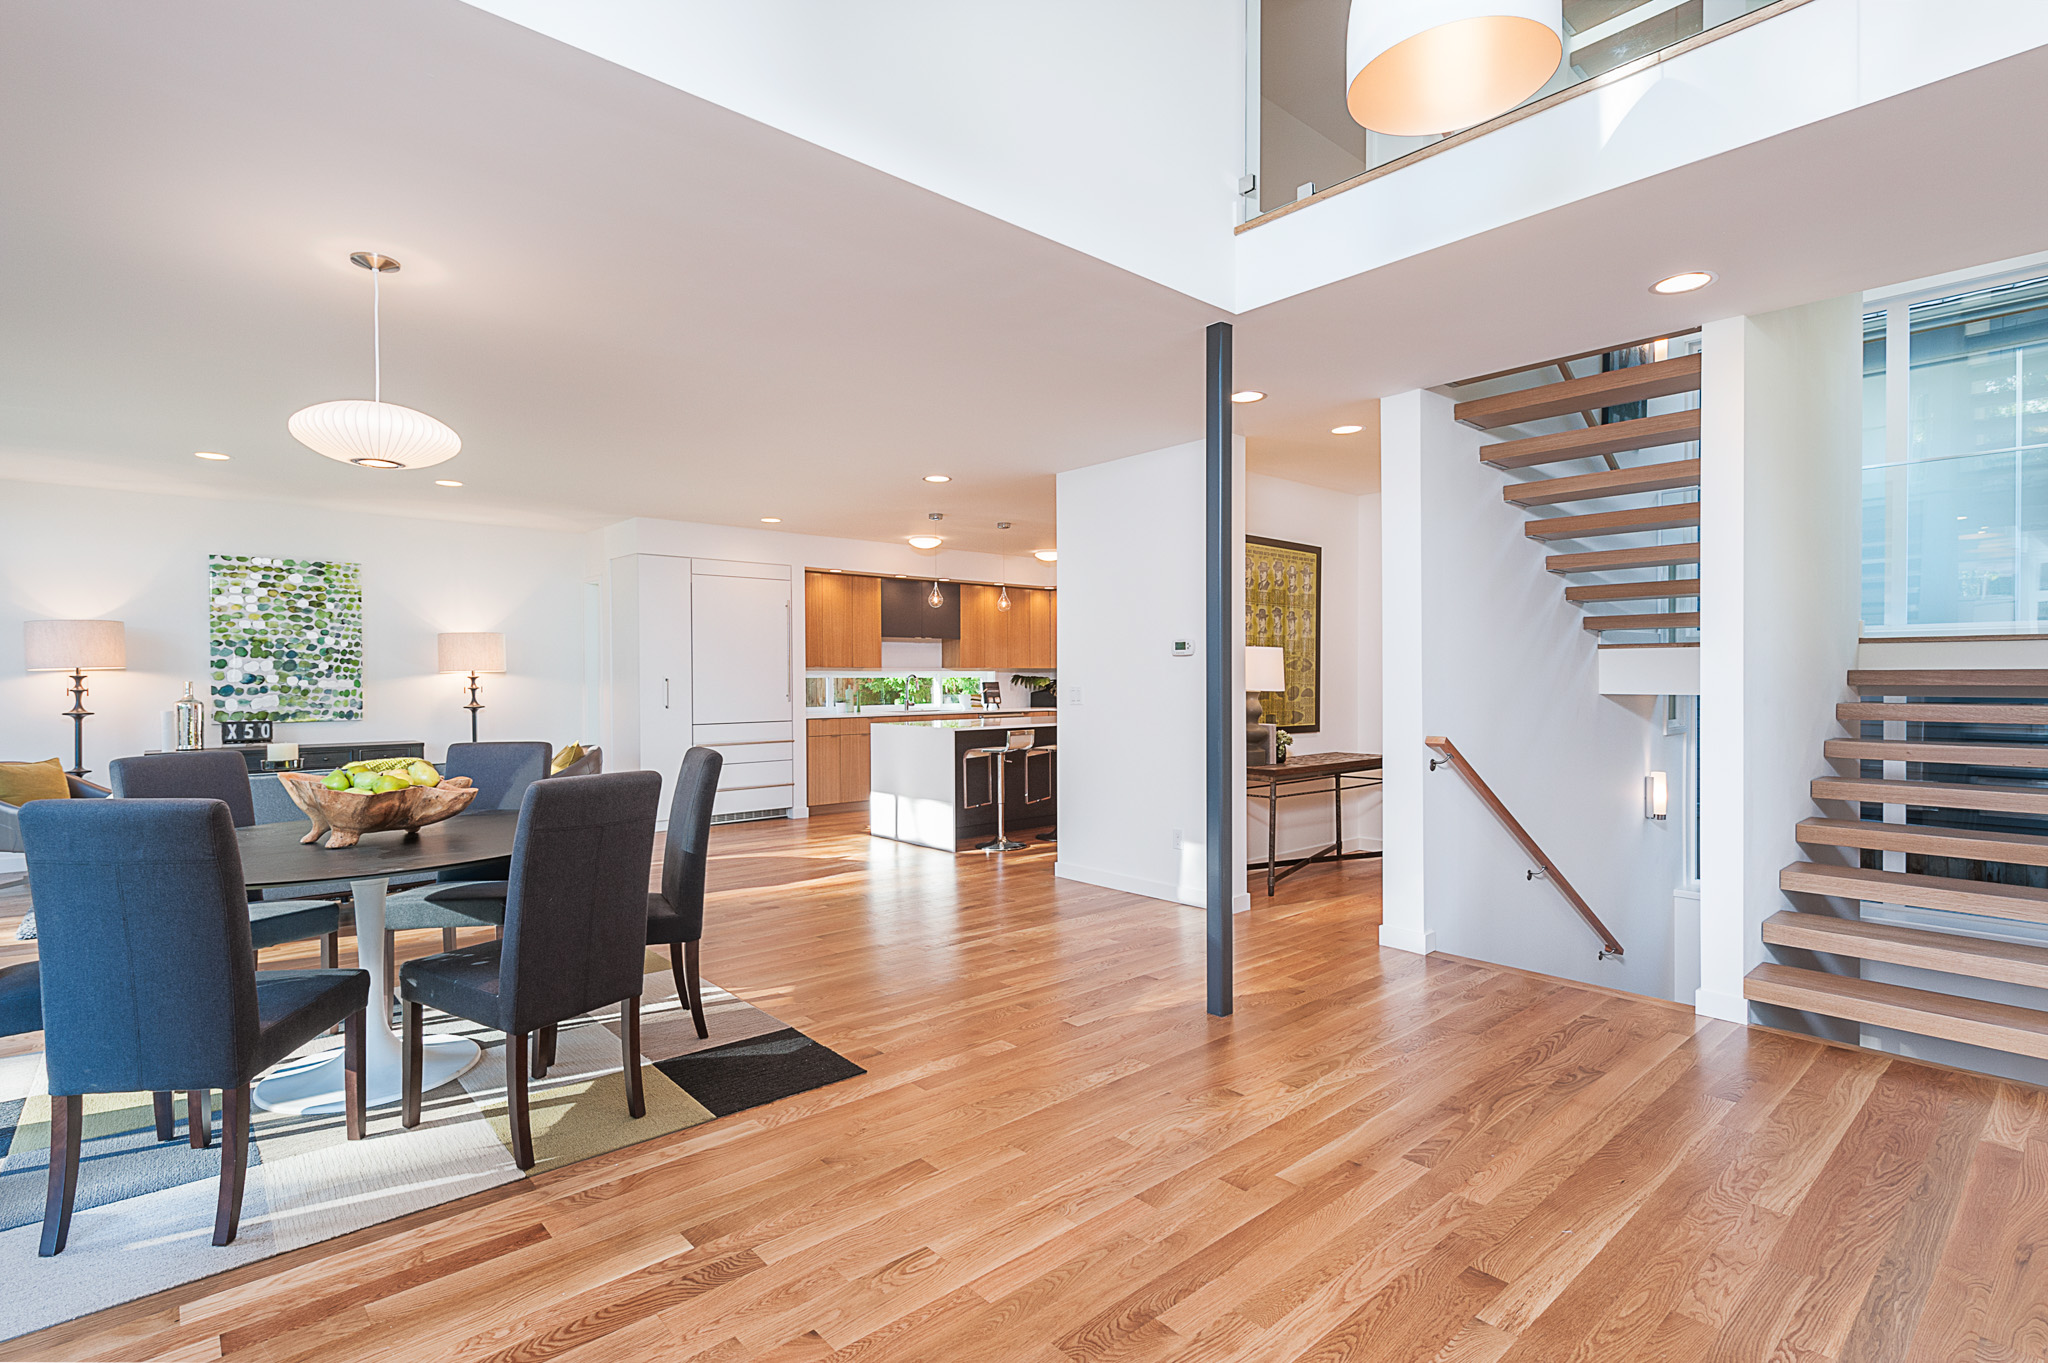 """In the  """"C"""" House , the dogleg stair marches up the center of the house, creating this stairway """"spine"""" that brings daylight in from the window wall. In the top left of the photo, you can see the second floor bridge that looks down onto this double height entry space."""